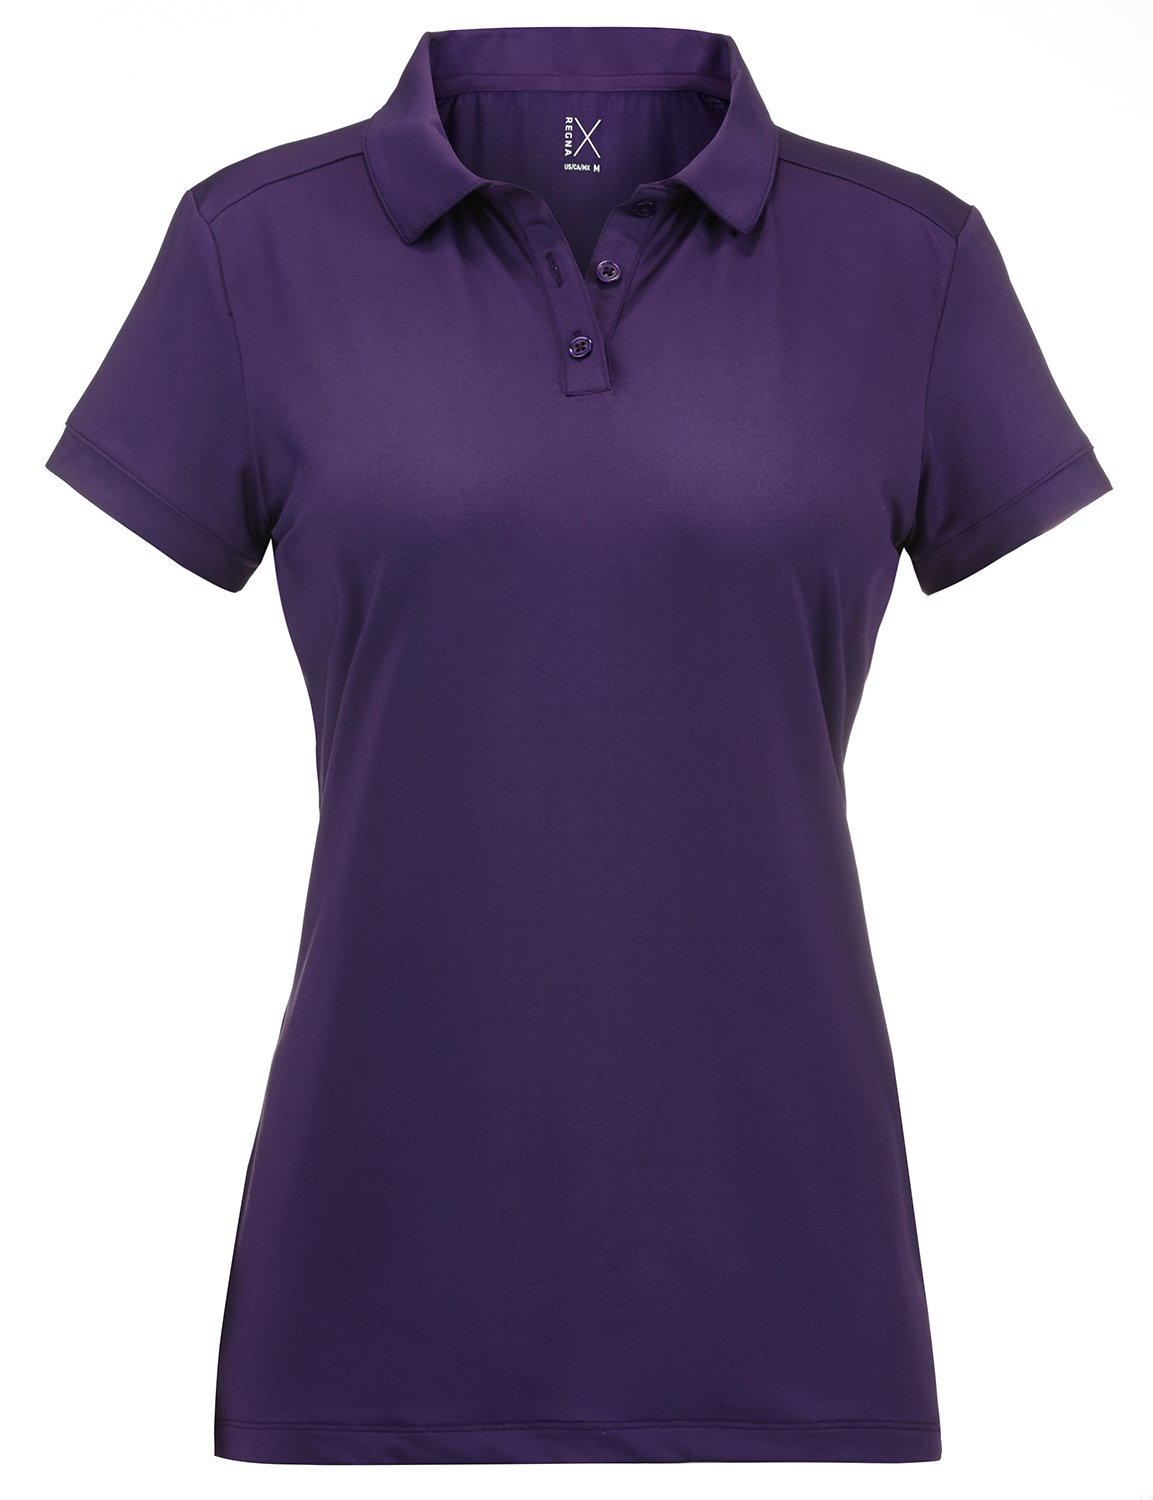 Regna X Plus Size Moisture Wicking Short Sleeve Polo t Shirt Women Purple 2XL